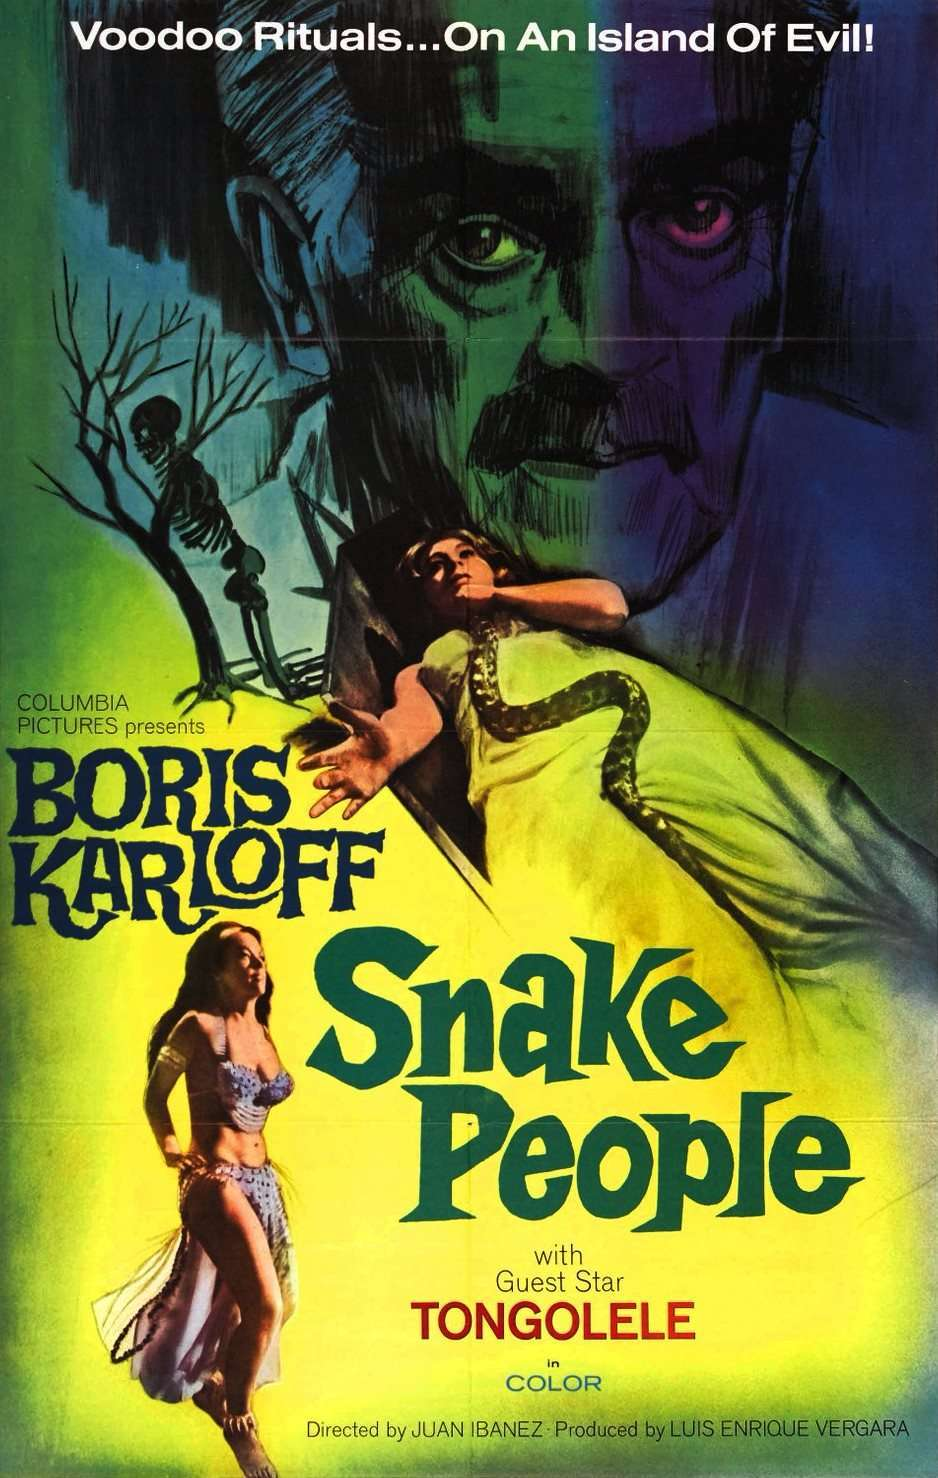 Isle of the Snake People (1971) poster